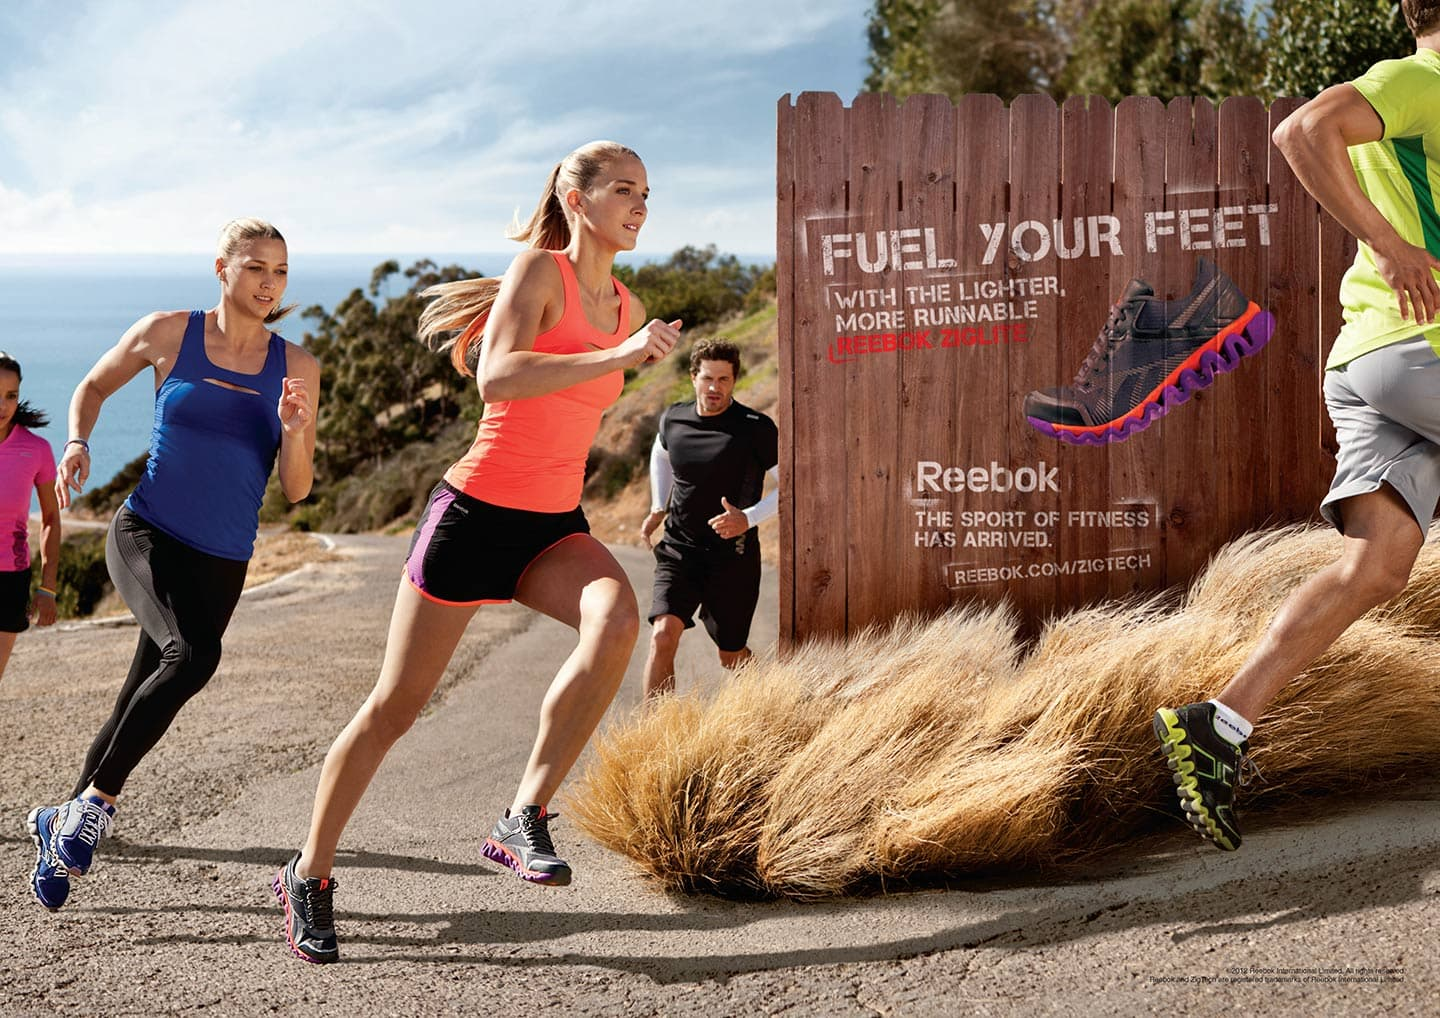 Outdoor Stairs Run Men Women Reebok Advertisment Fuel Your Feet